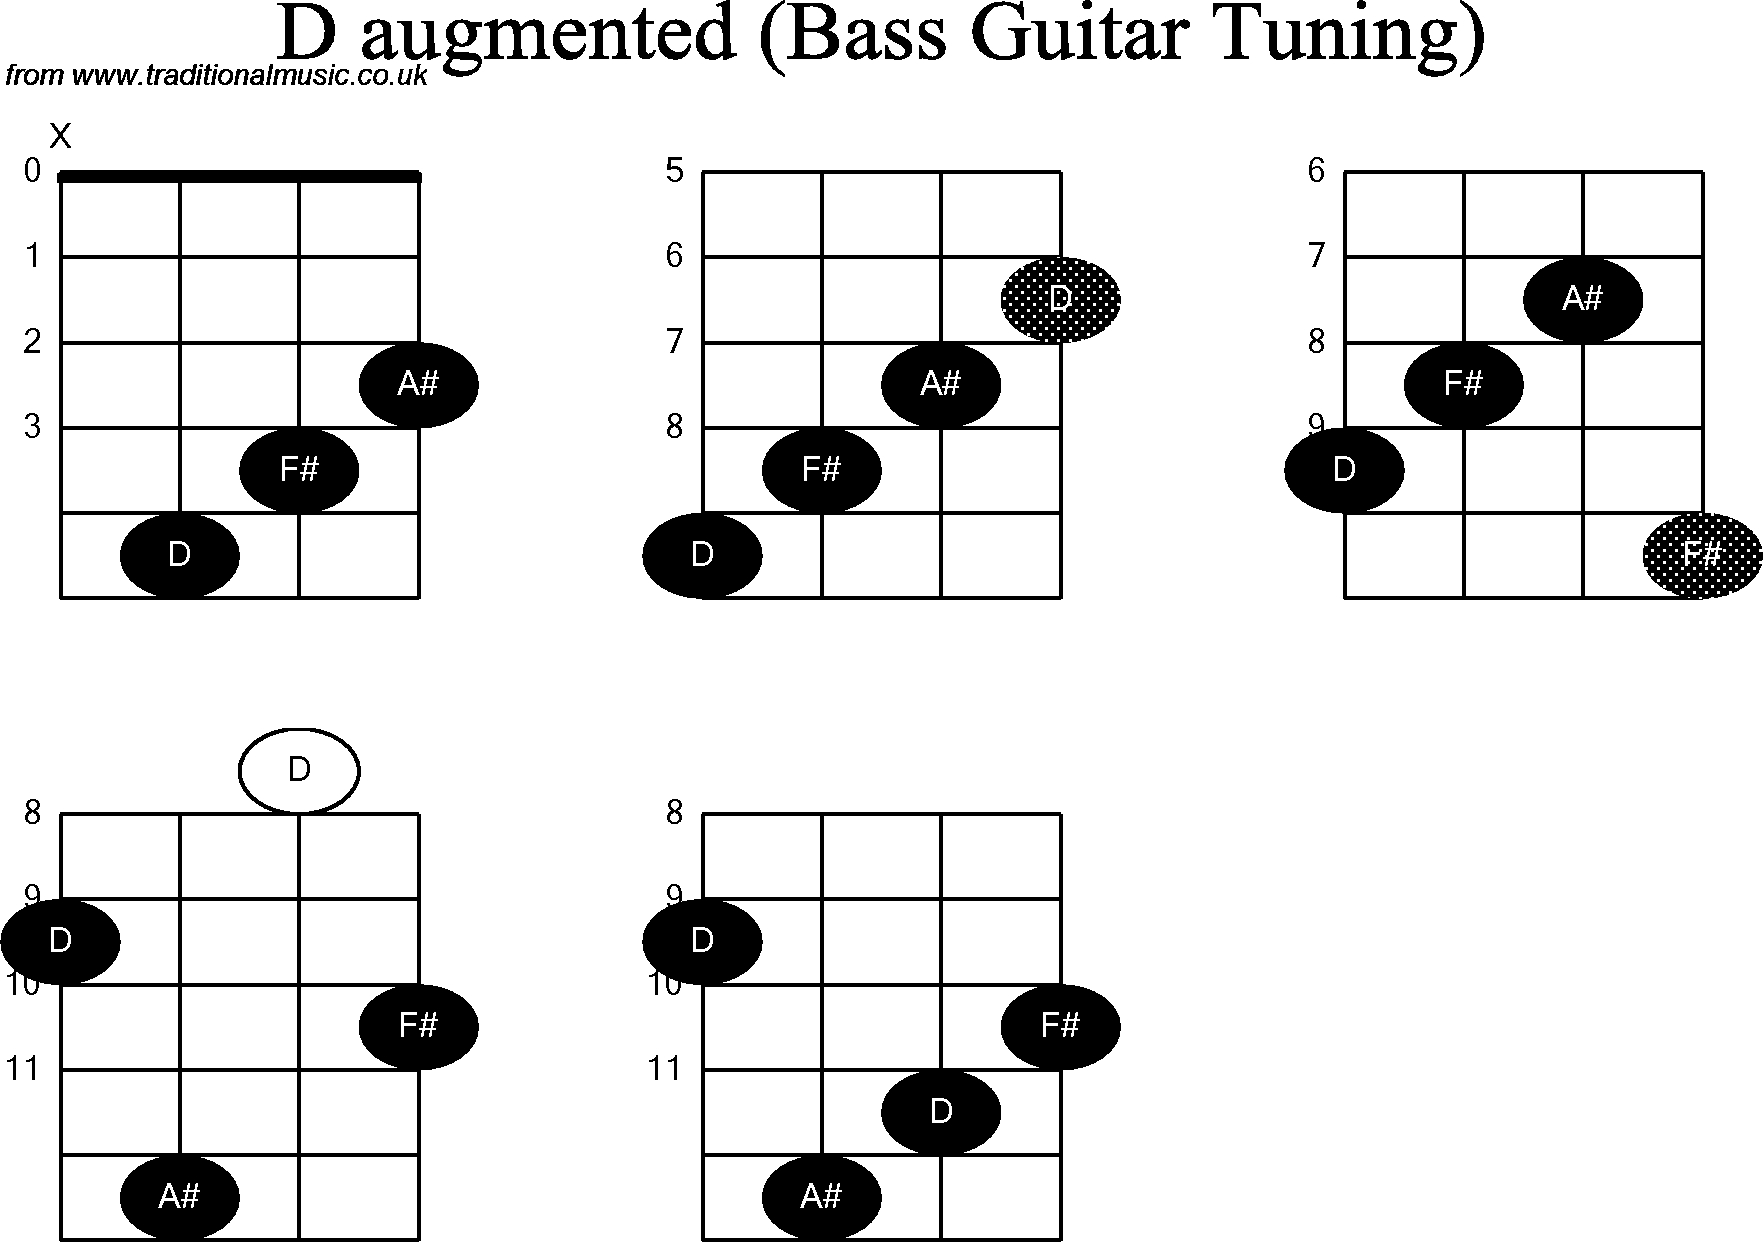 Bass Guitar Chords Bass Guitar Chord Diagrams For D Augmented